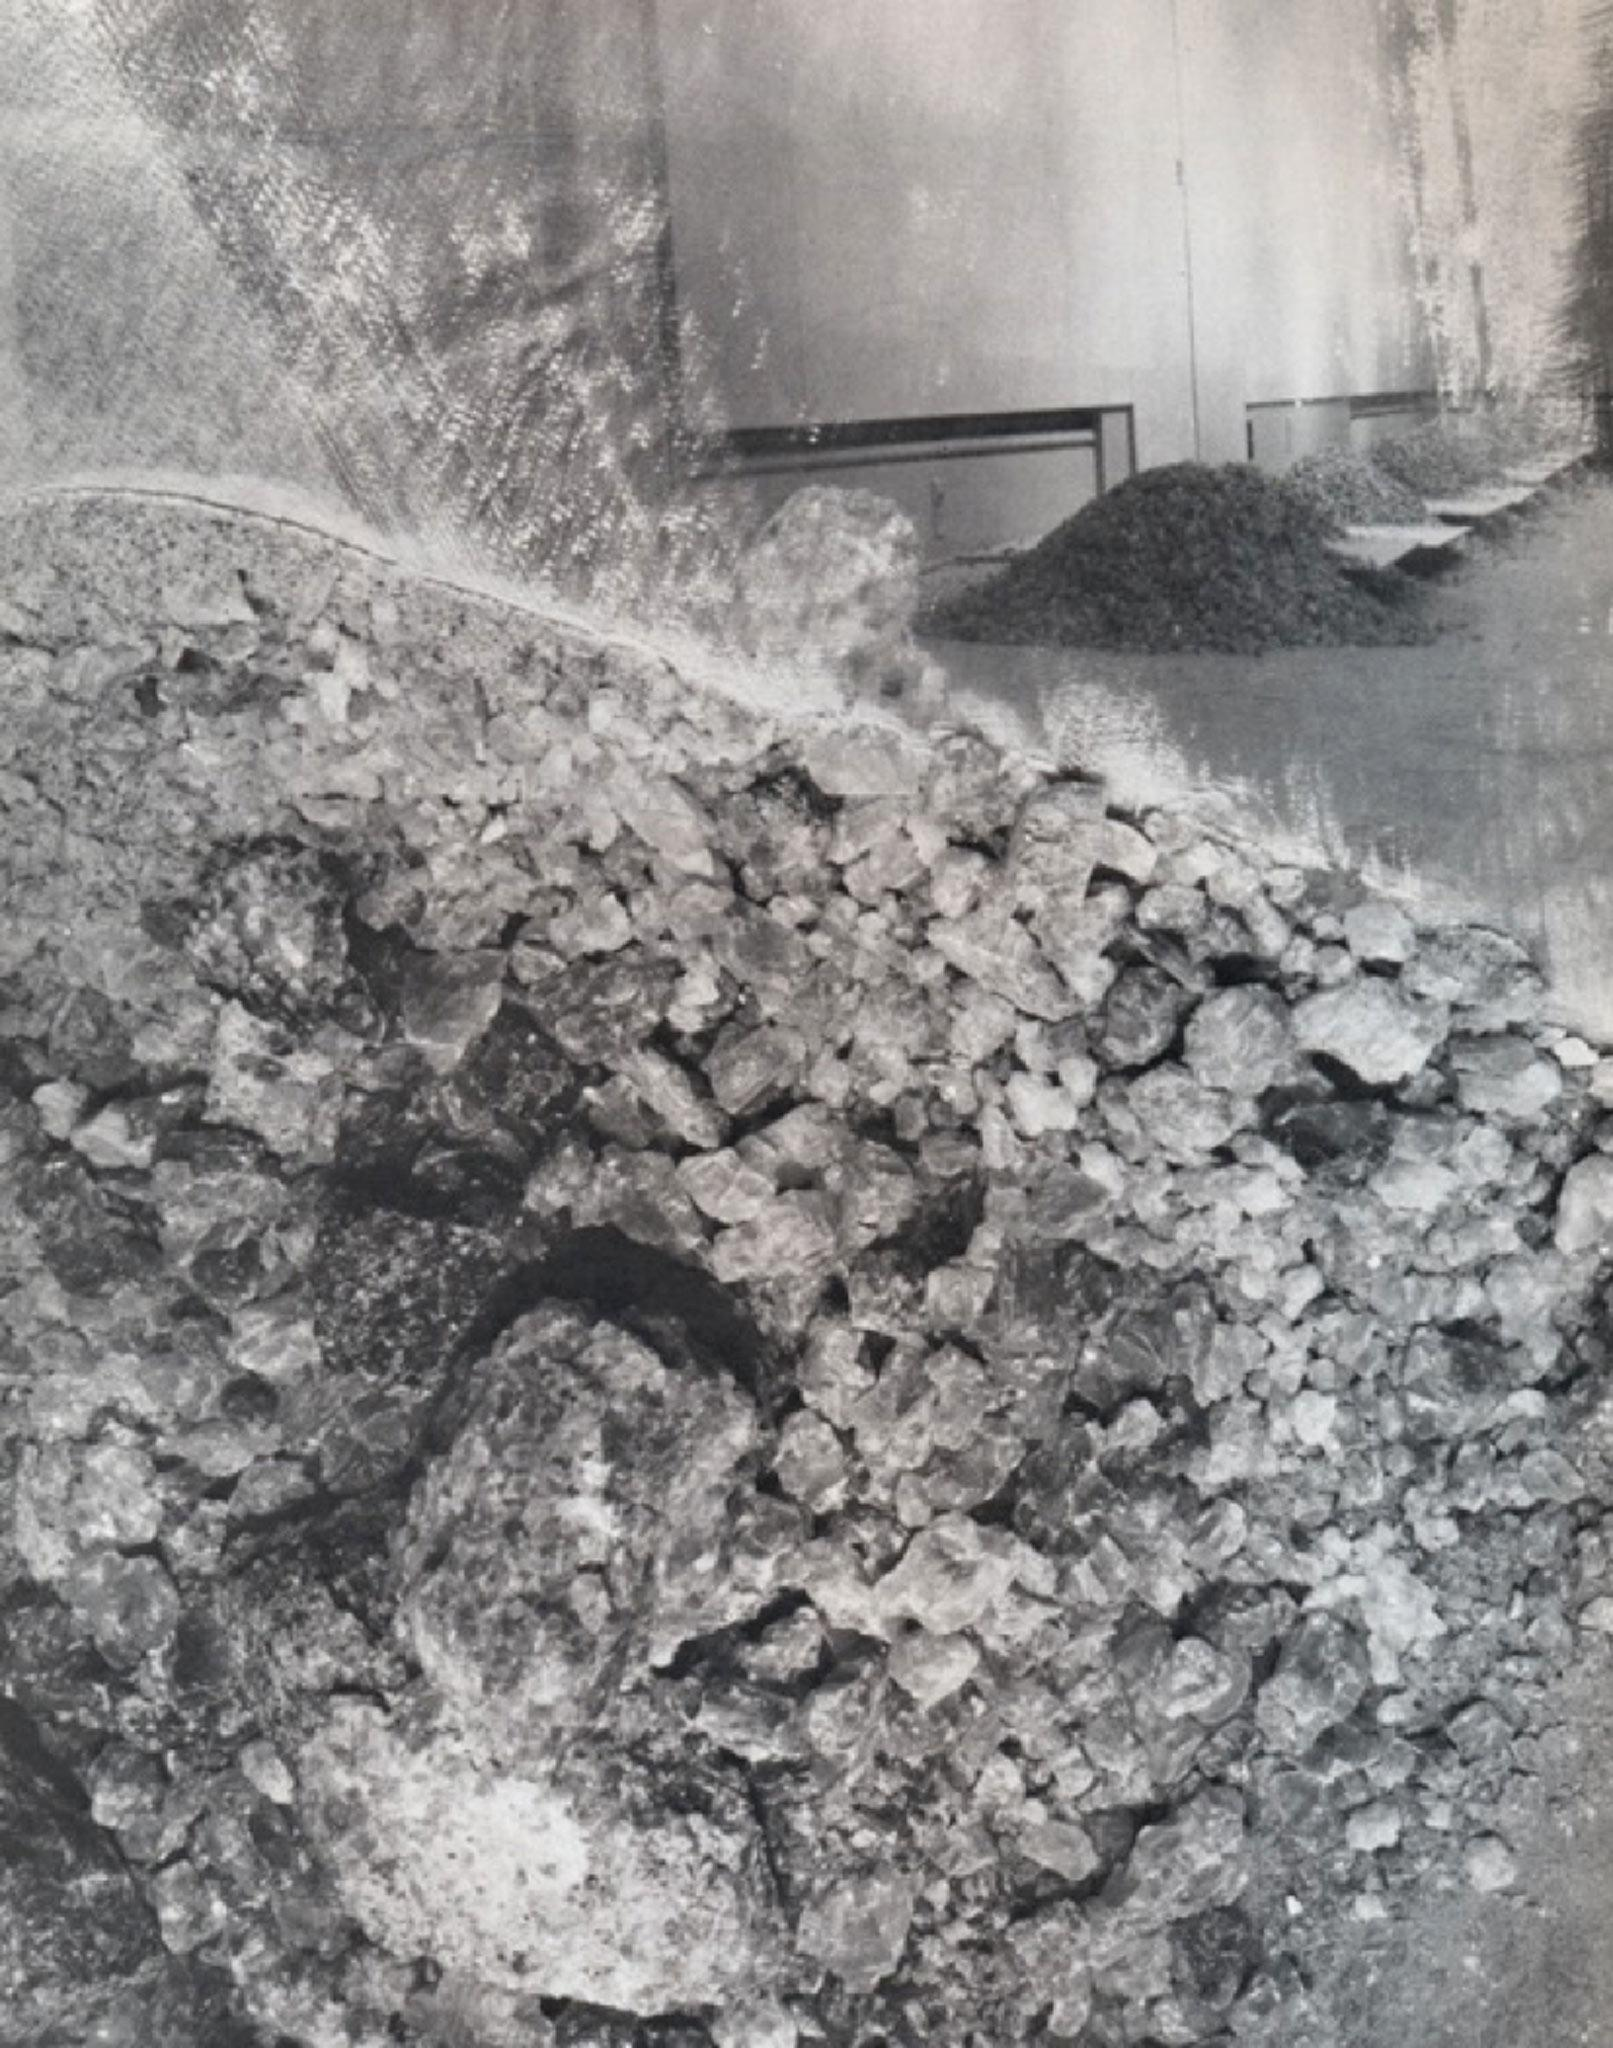 black and white detail image of rocks and a mirrored surface with a sculpture visible in the background